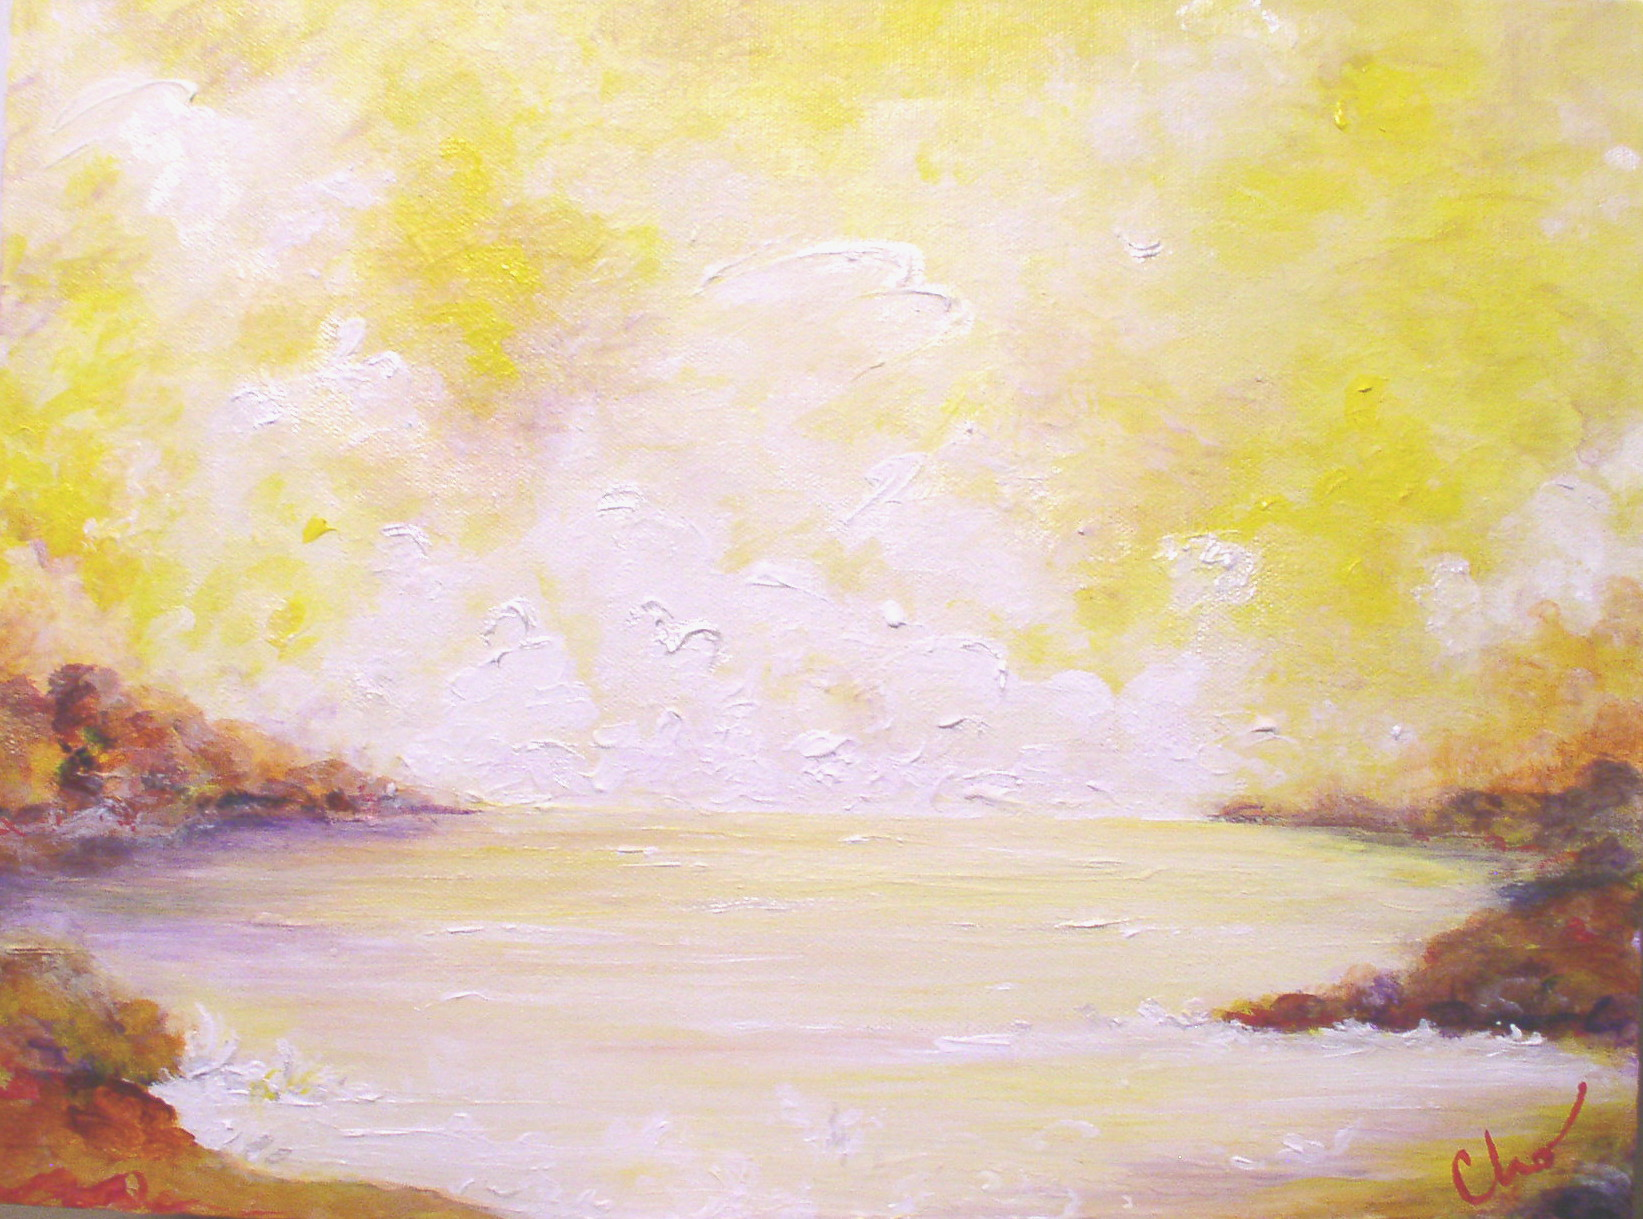 Immersed in Lightness 12x16 March 2009-- $150